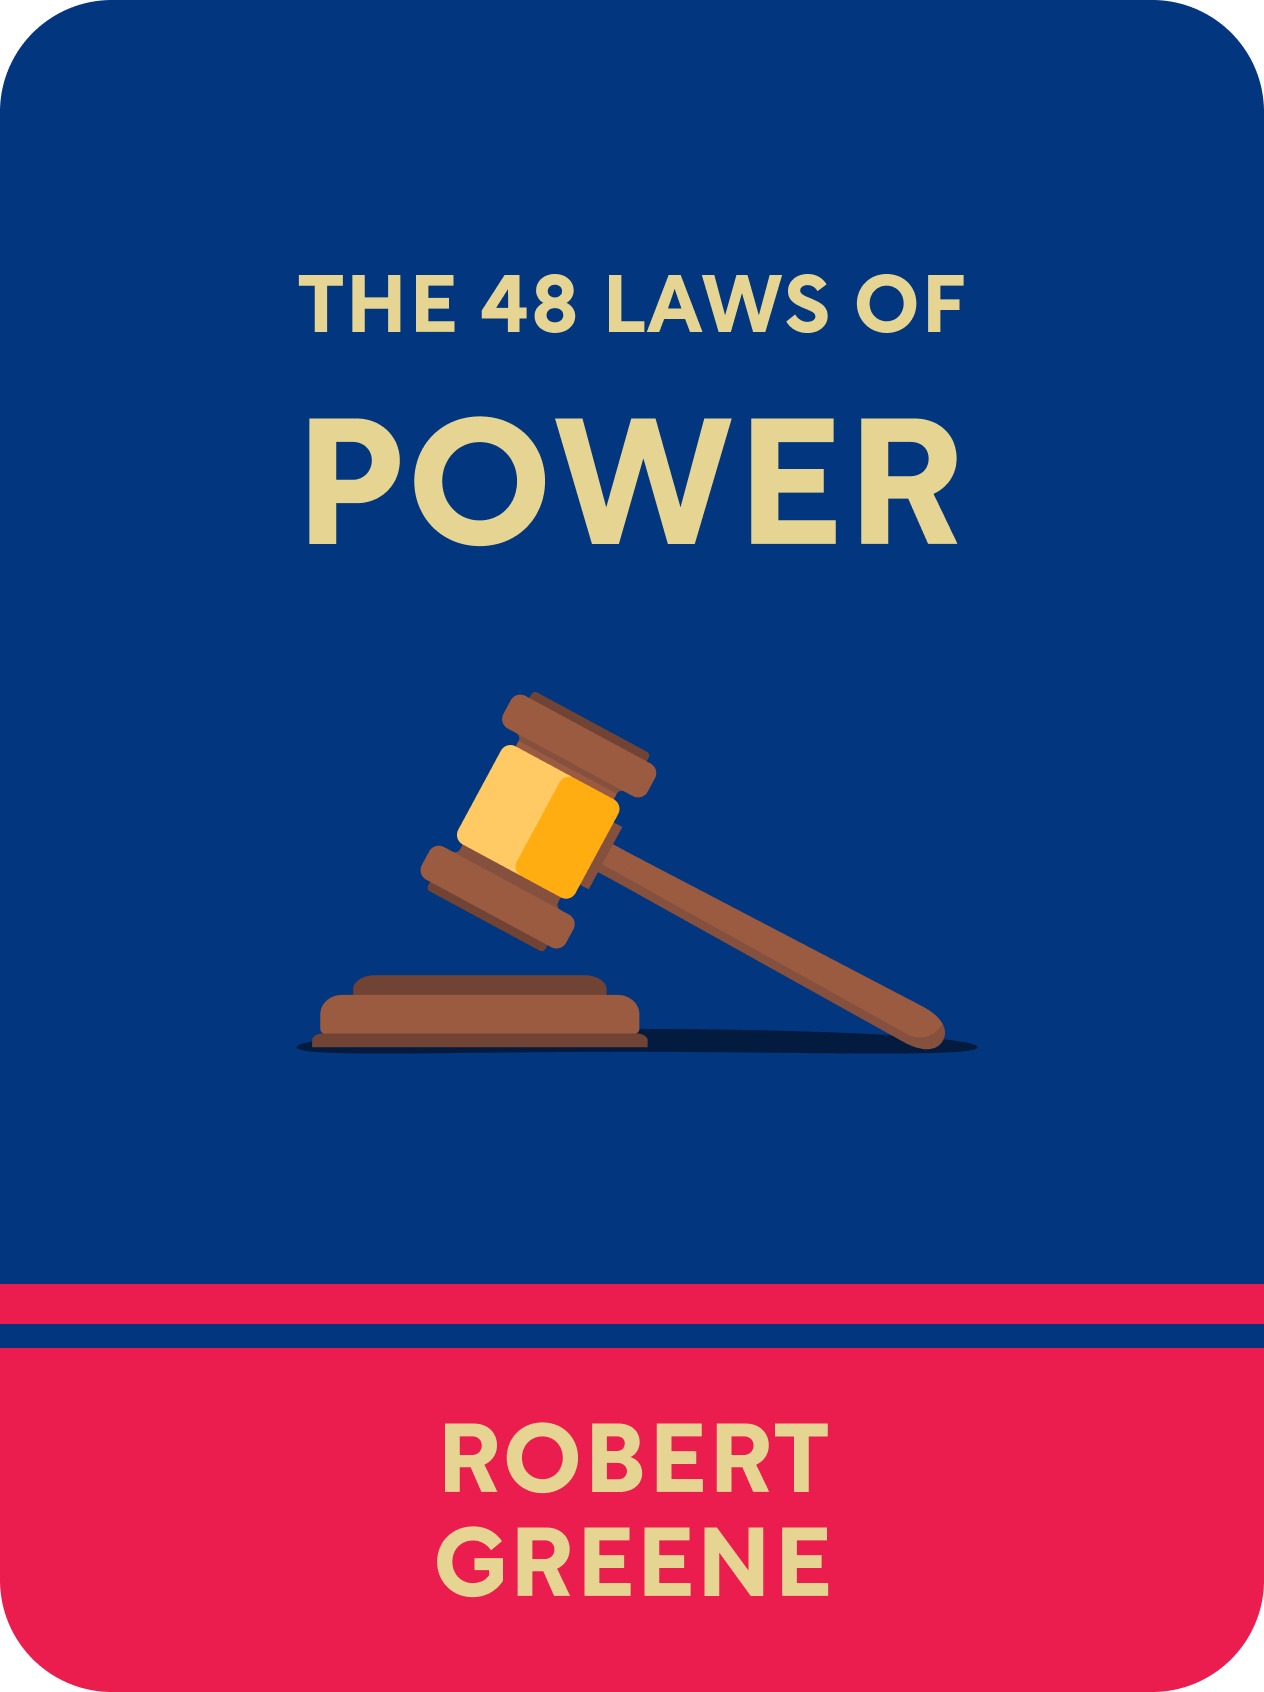 The 48 Laws of Power Book Summary by Robert Greene